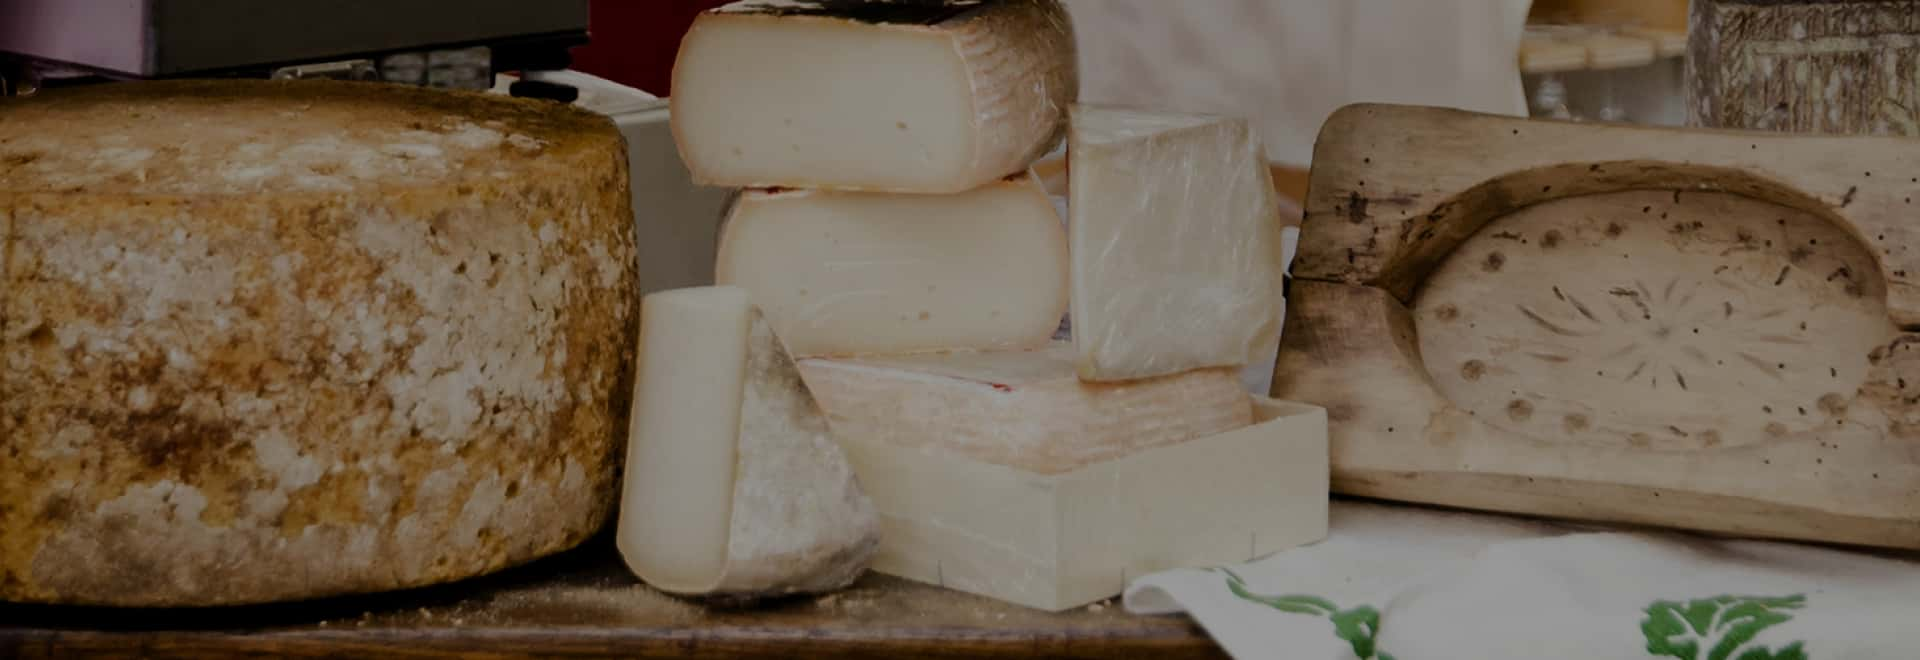 Sherpa supermarché fond fromages